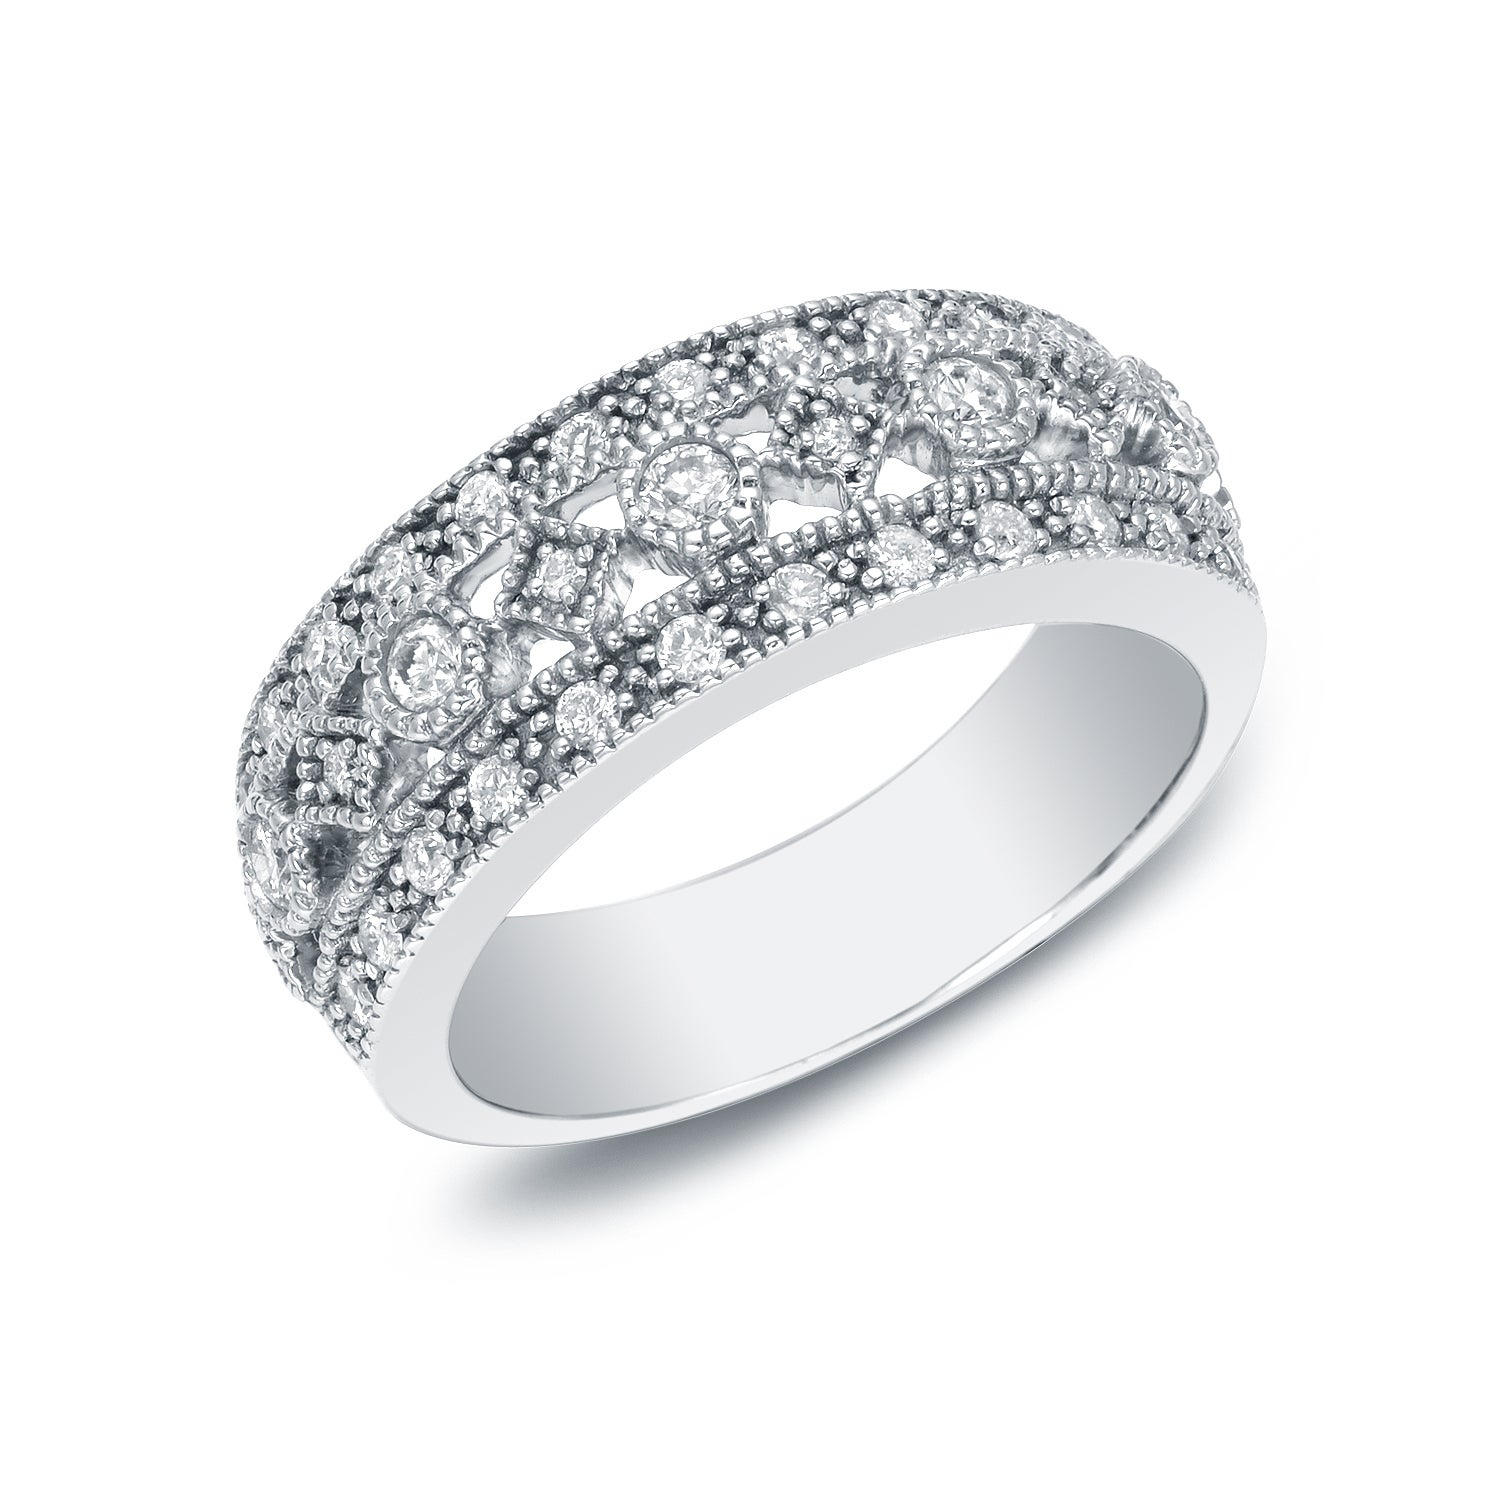 Auriya Vintage Inspired Wide 3 Row Diamond Wedding Band 1/2cttw 14k White Gold Throughout Most Current Diamond Vintage Style Three Row Anniversary Bands In White Gold (View 5 of 25)